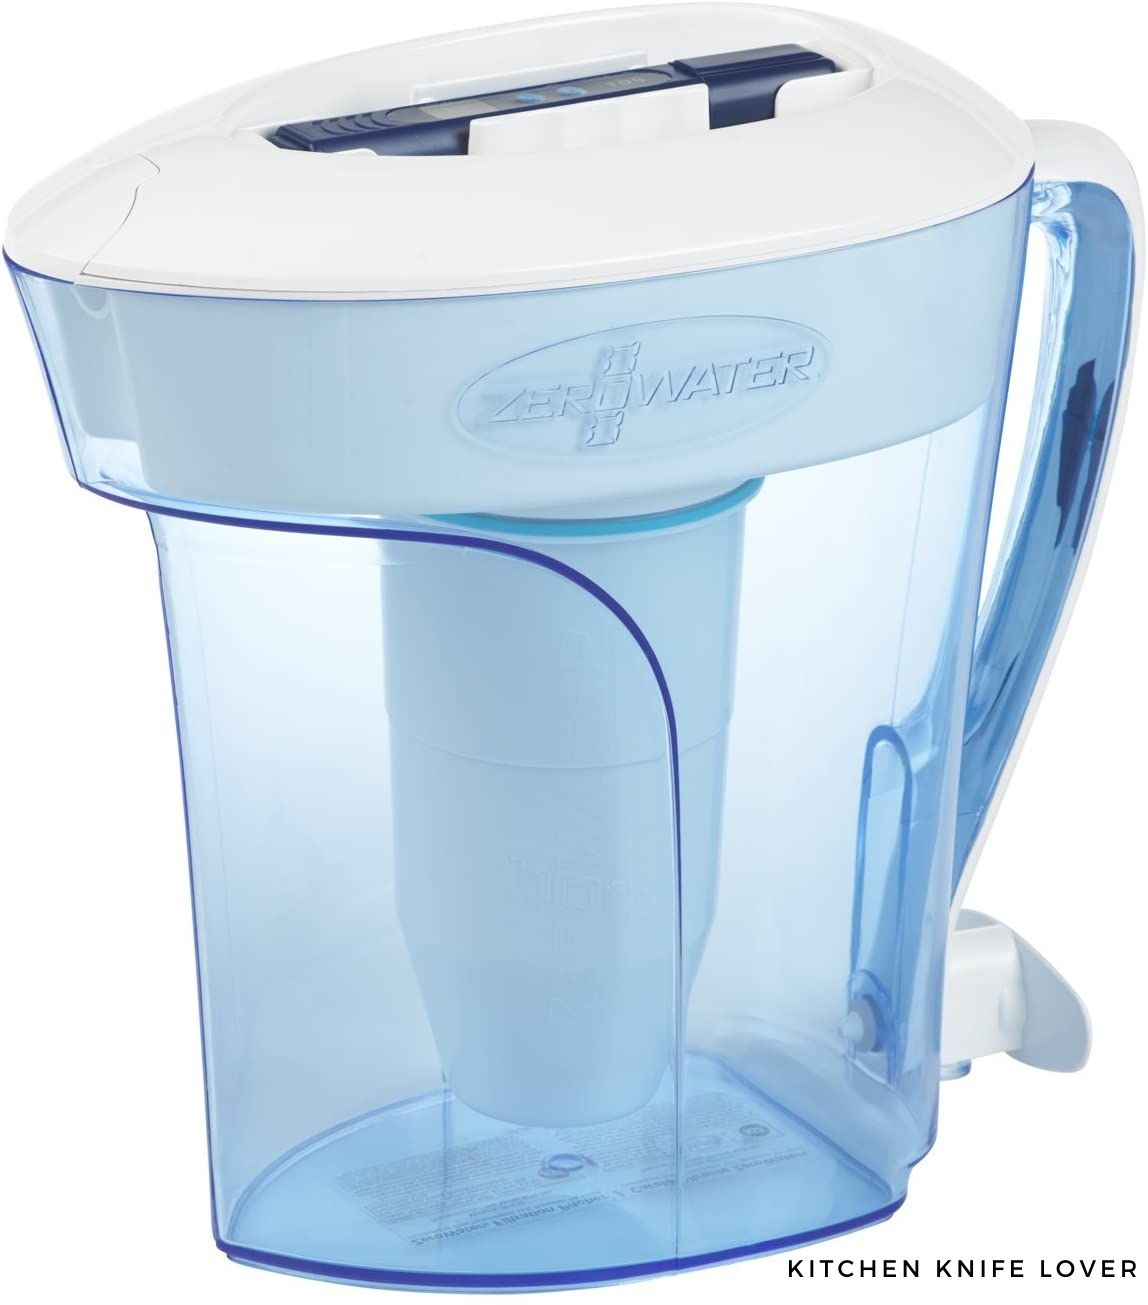 How Long Does A Zero Water Filter Last?